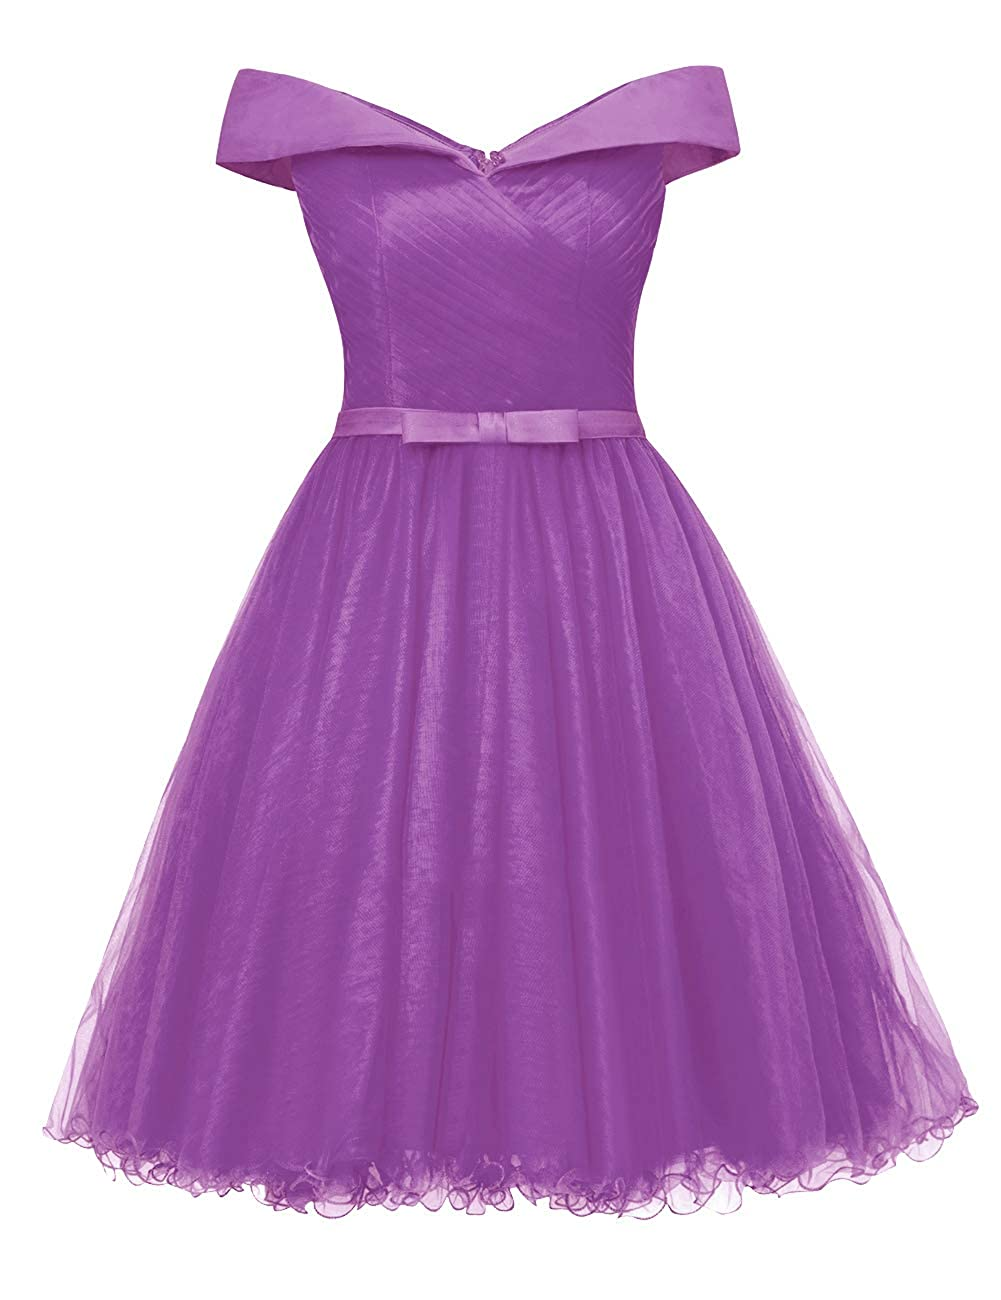 Purple Uther Off The Shoulder Prom Homecoming Dresses Knee Length Cocktail Dress Tulle Gown